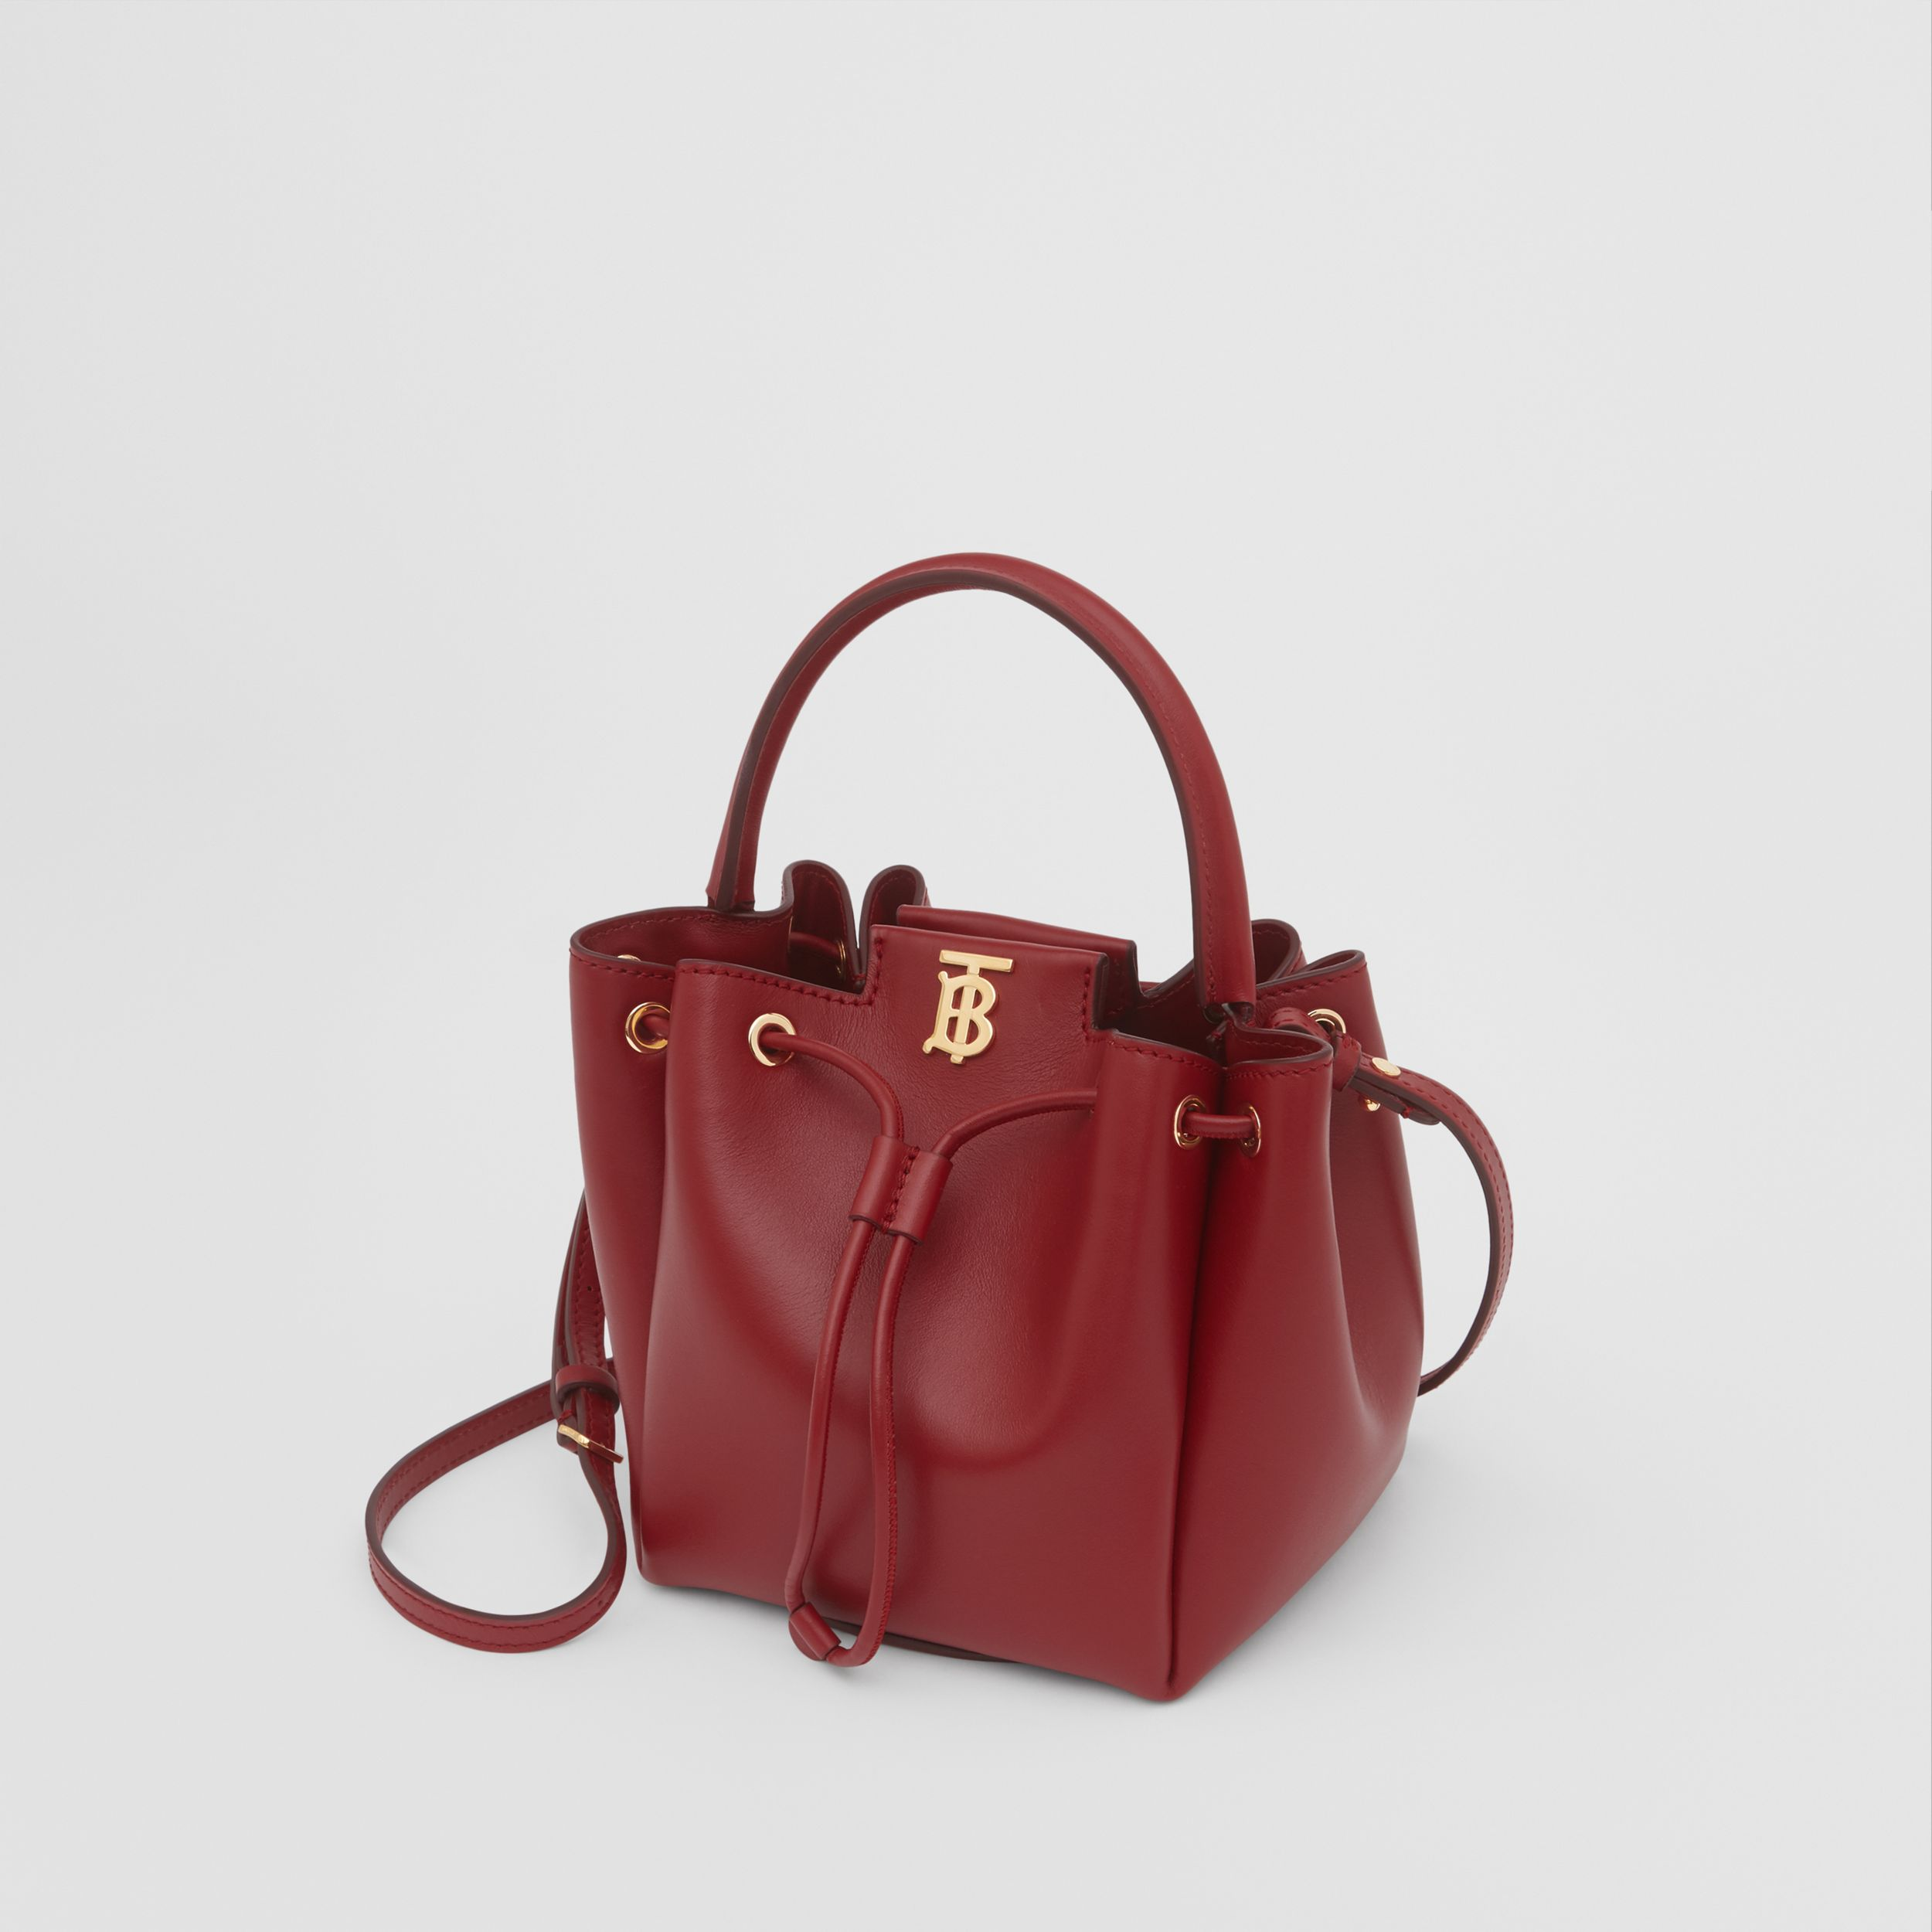 Monogram Motif Leather Bucket Bag in Dark Carmine - Women | Burberry - 3